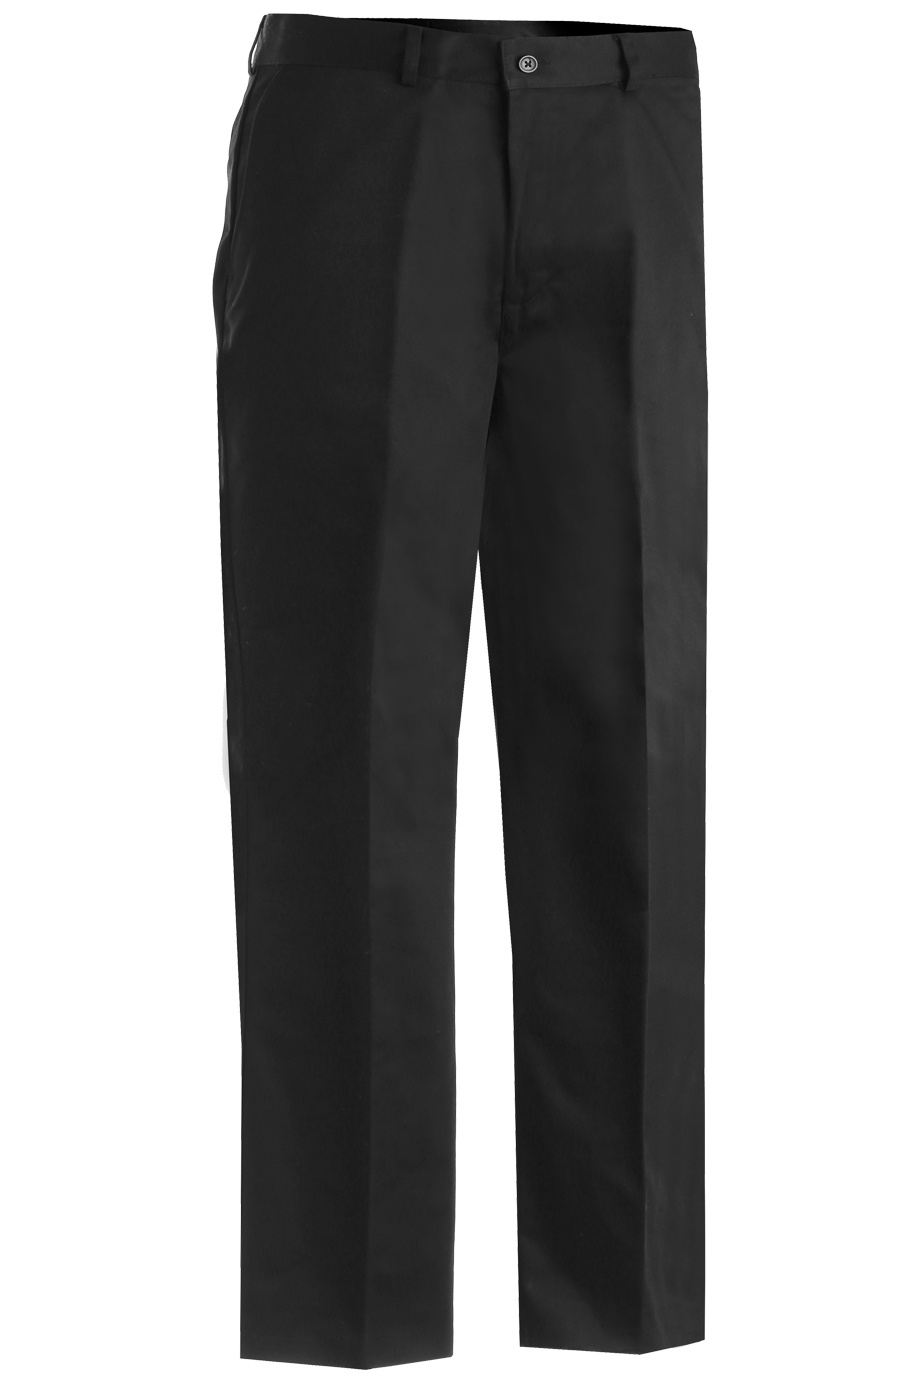 'Edwards 2578 Men's Easy Fit Chino Flat Front Pant'